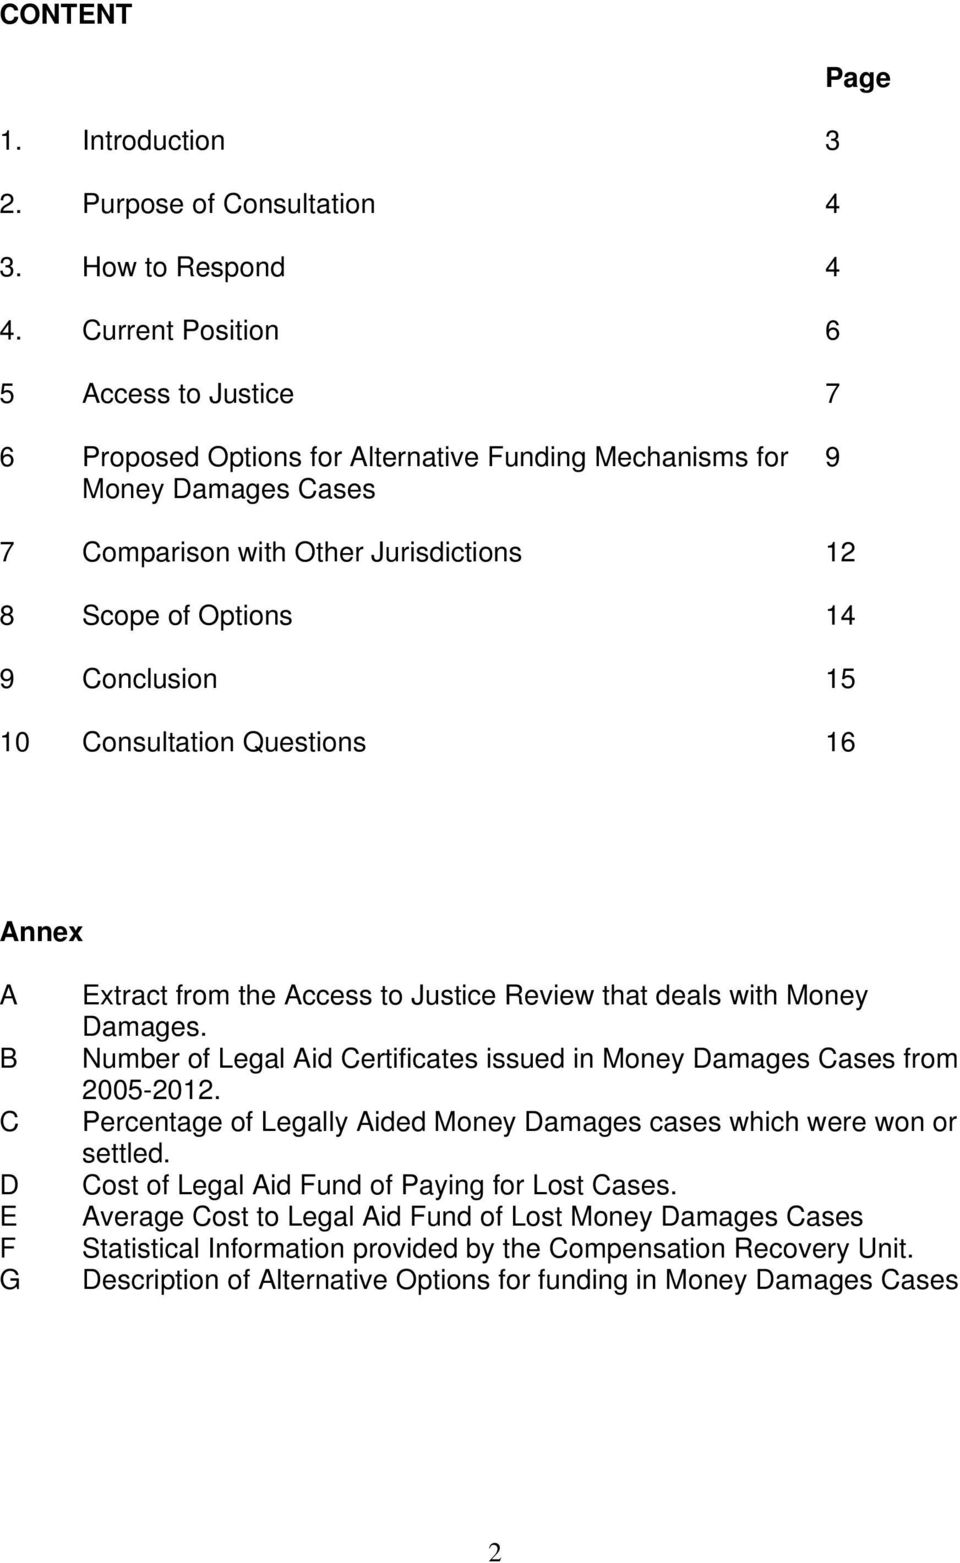 10 Consultation Questions 16 Page Annex A B C D E F G Extract from the Access to Justice Review that deals with Money Damages.